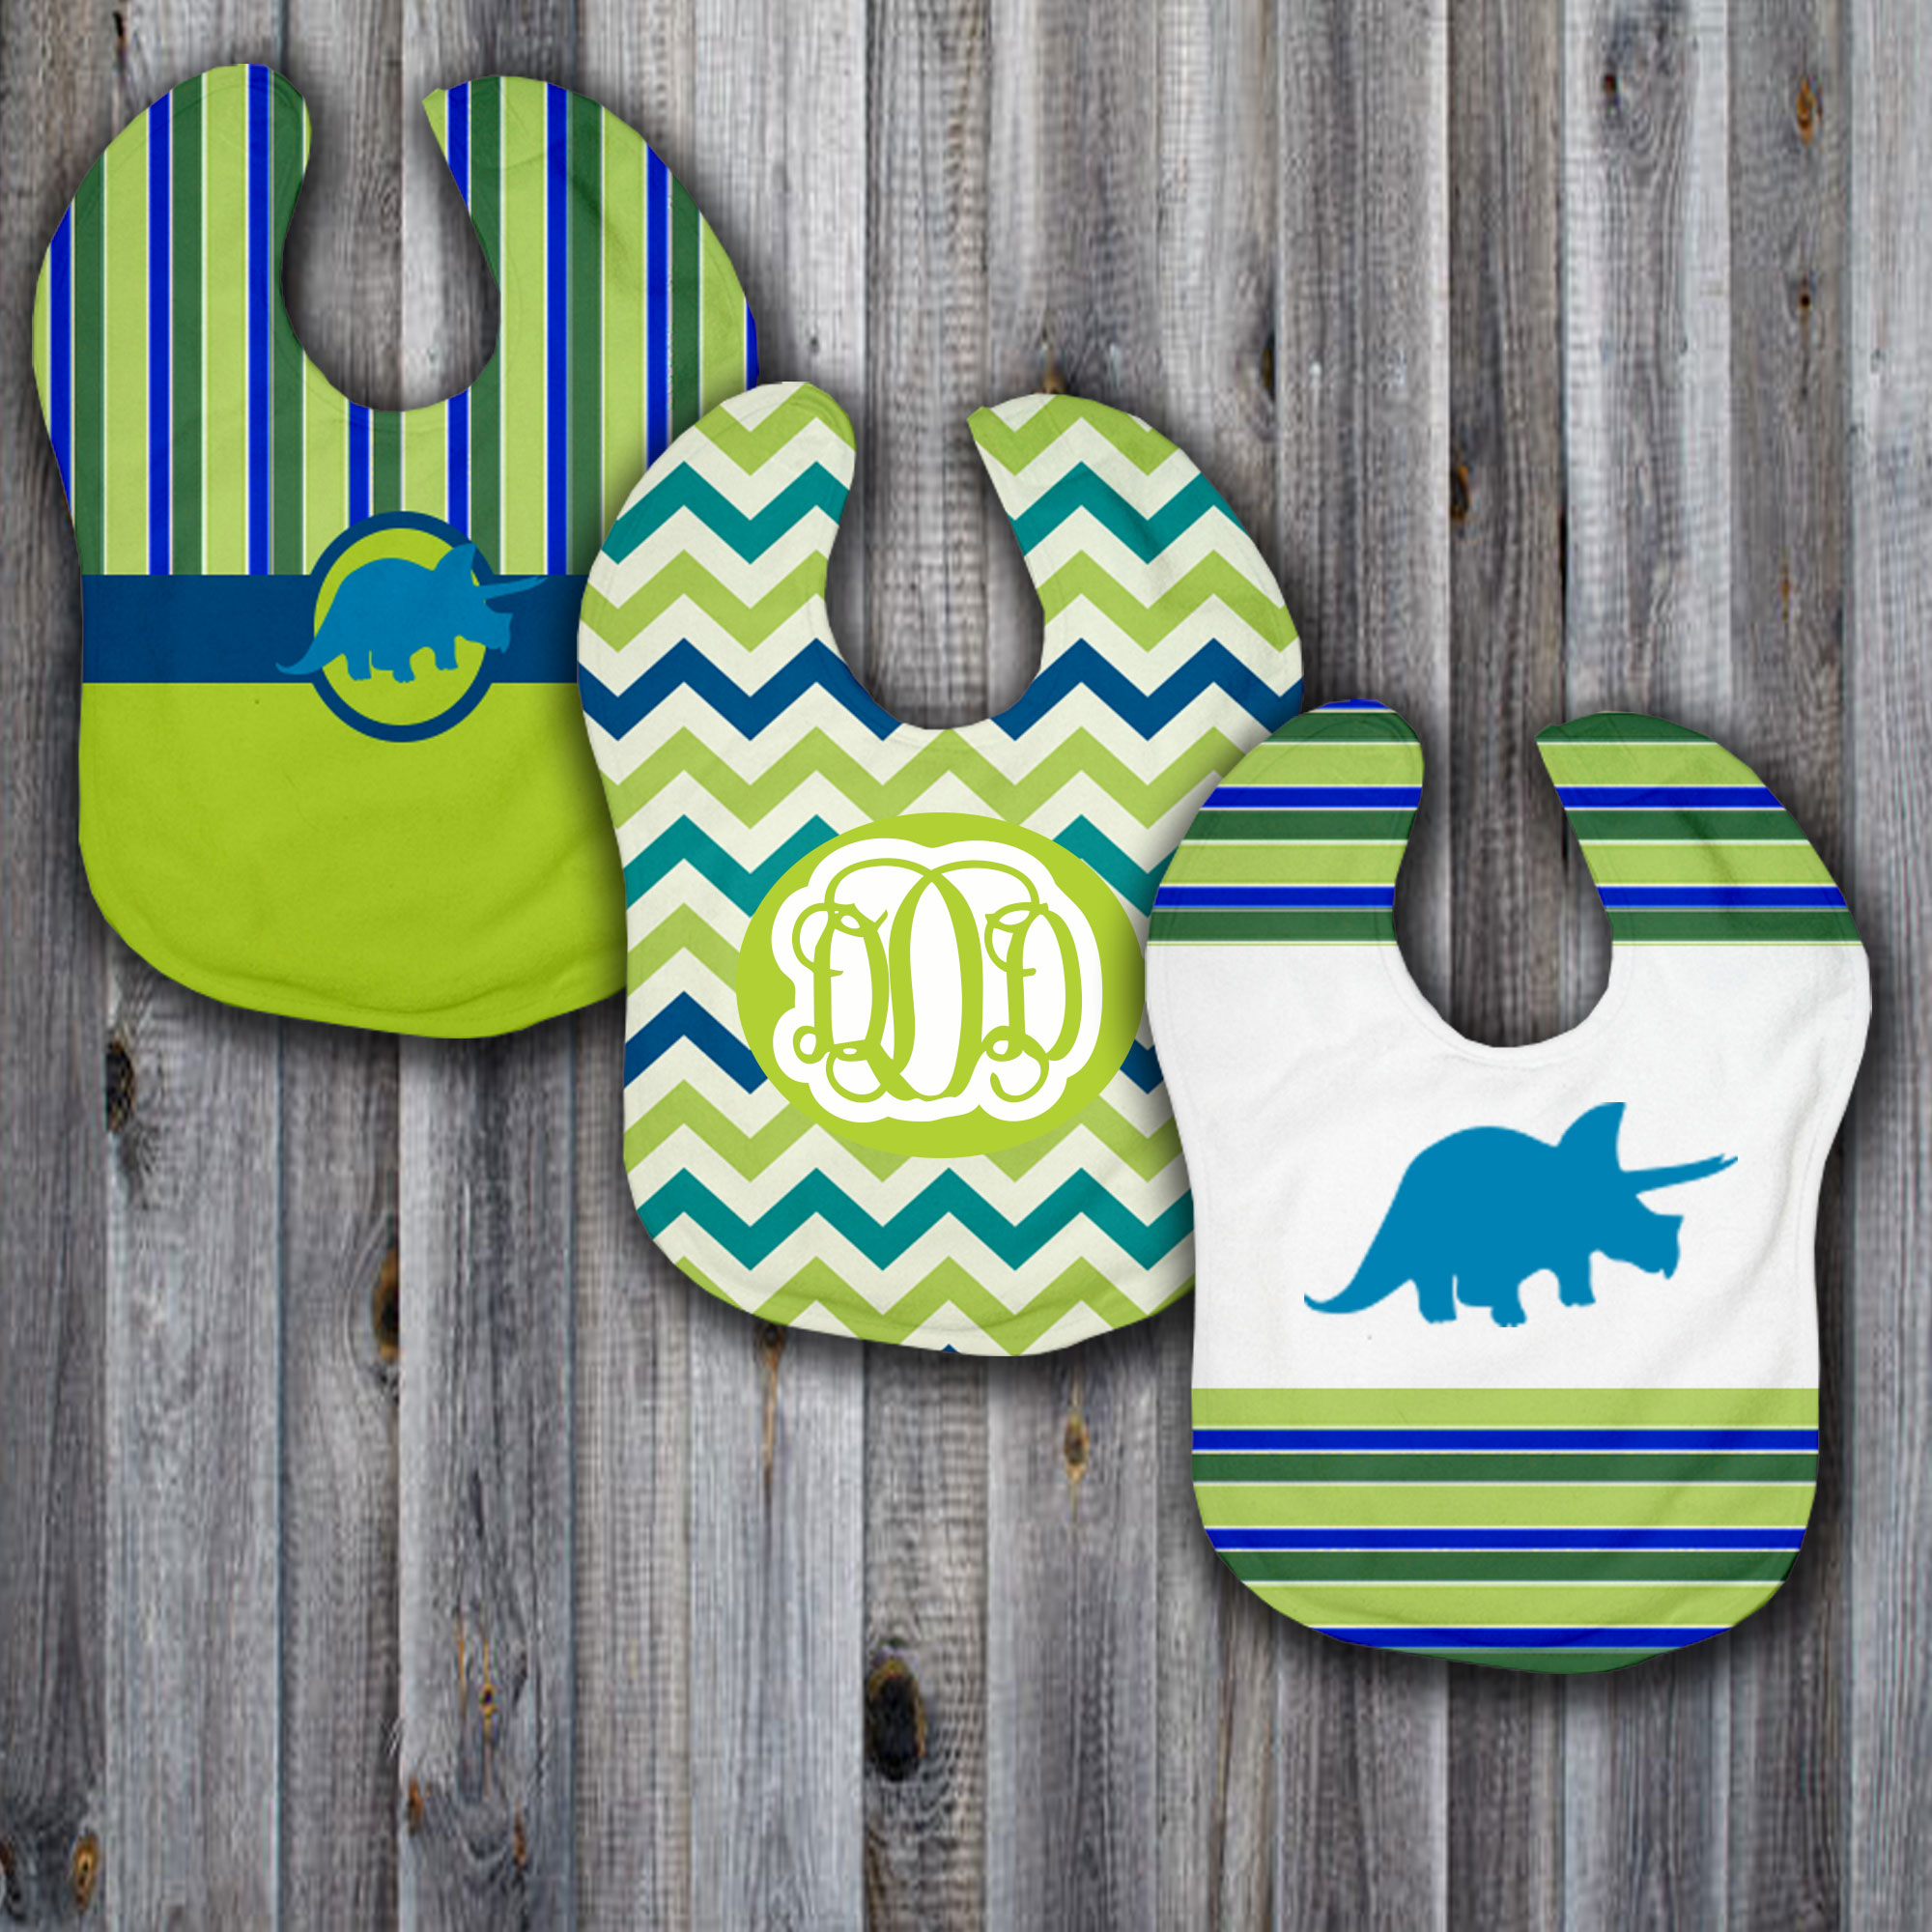 Lifestyles by Ramco 3 Piece Baby Bib Set.  Dinomyte Style.  Made in the USA. Great for Baby Boy Showers.  Monogram the Baby Bibs to make it personal.